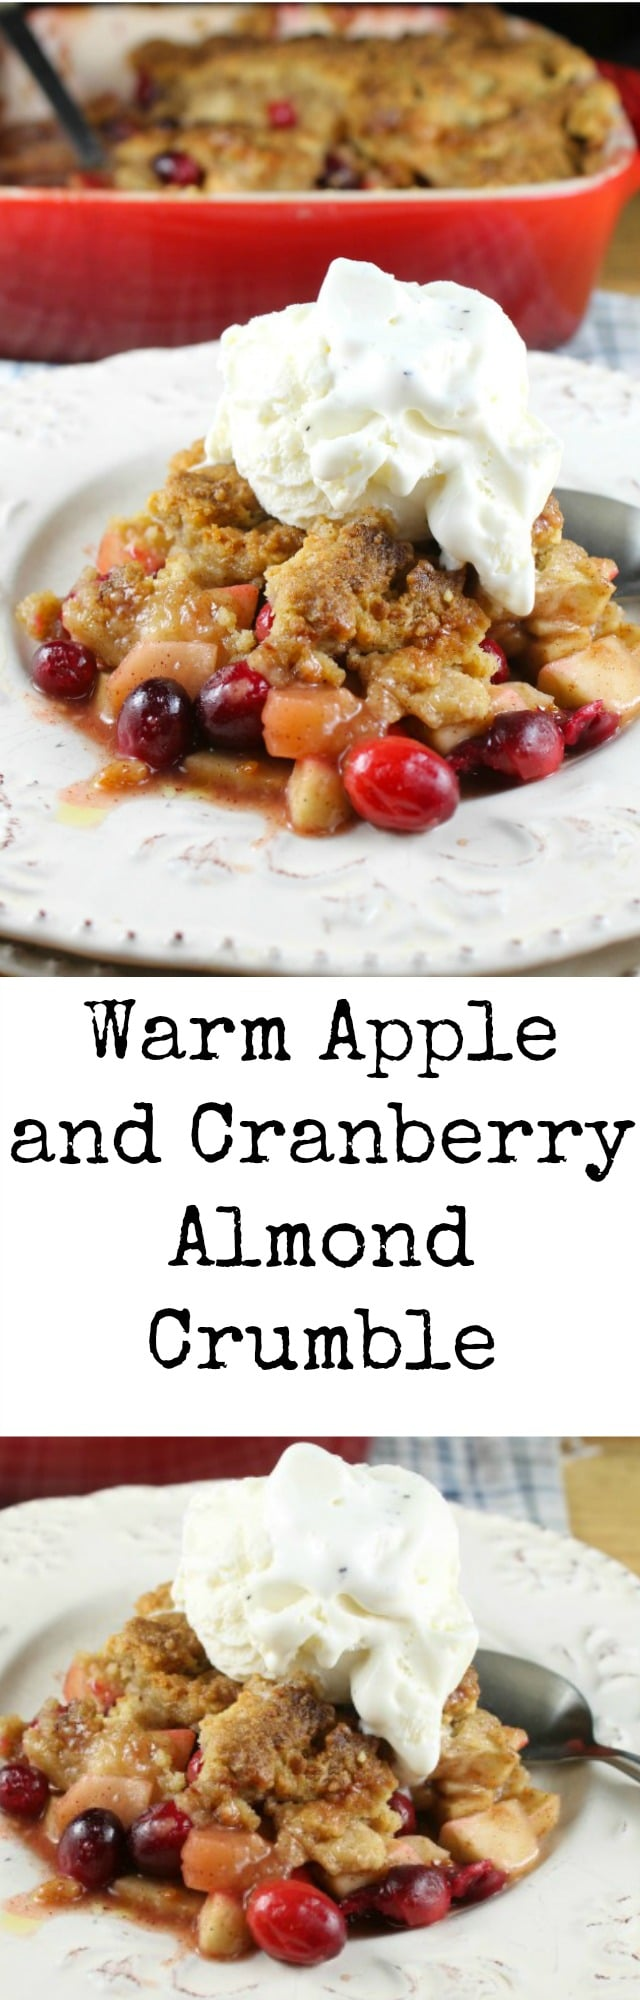 Delicious dessert to bake for the holidays! Warm Apple and Cranberry Almond Crumble from Le French Oven Cookbook ~ Recipe found at missinthekitchen.com